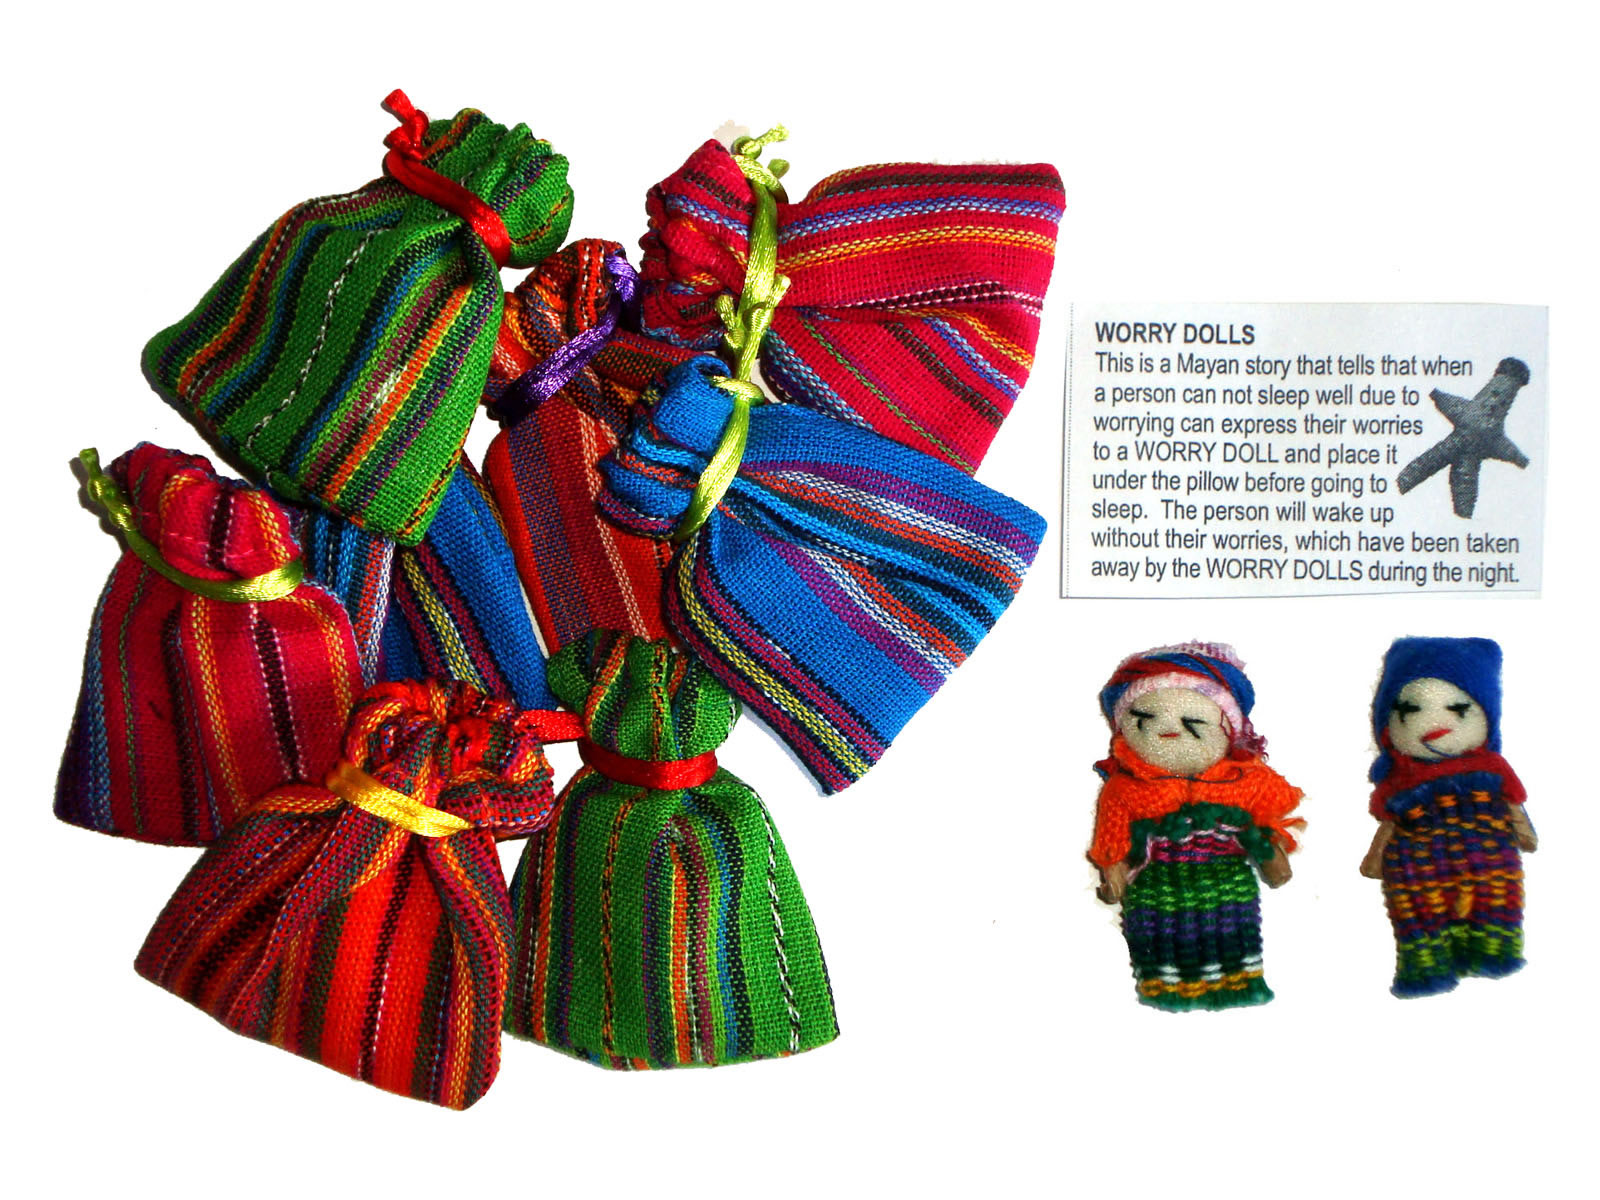 Worry Doll - 2 x SMALL WORRY DOLLS in TEXTILE BAG